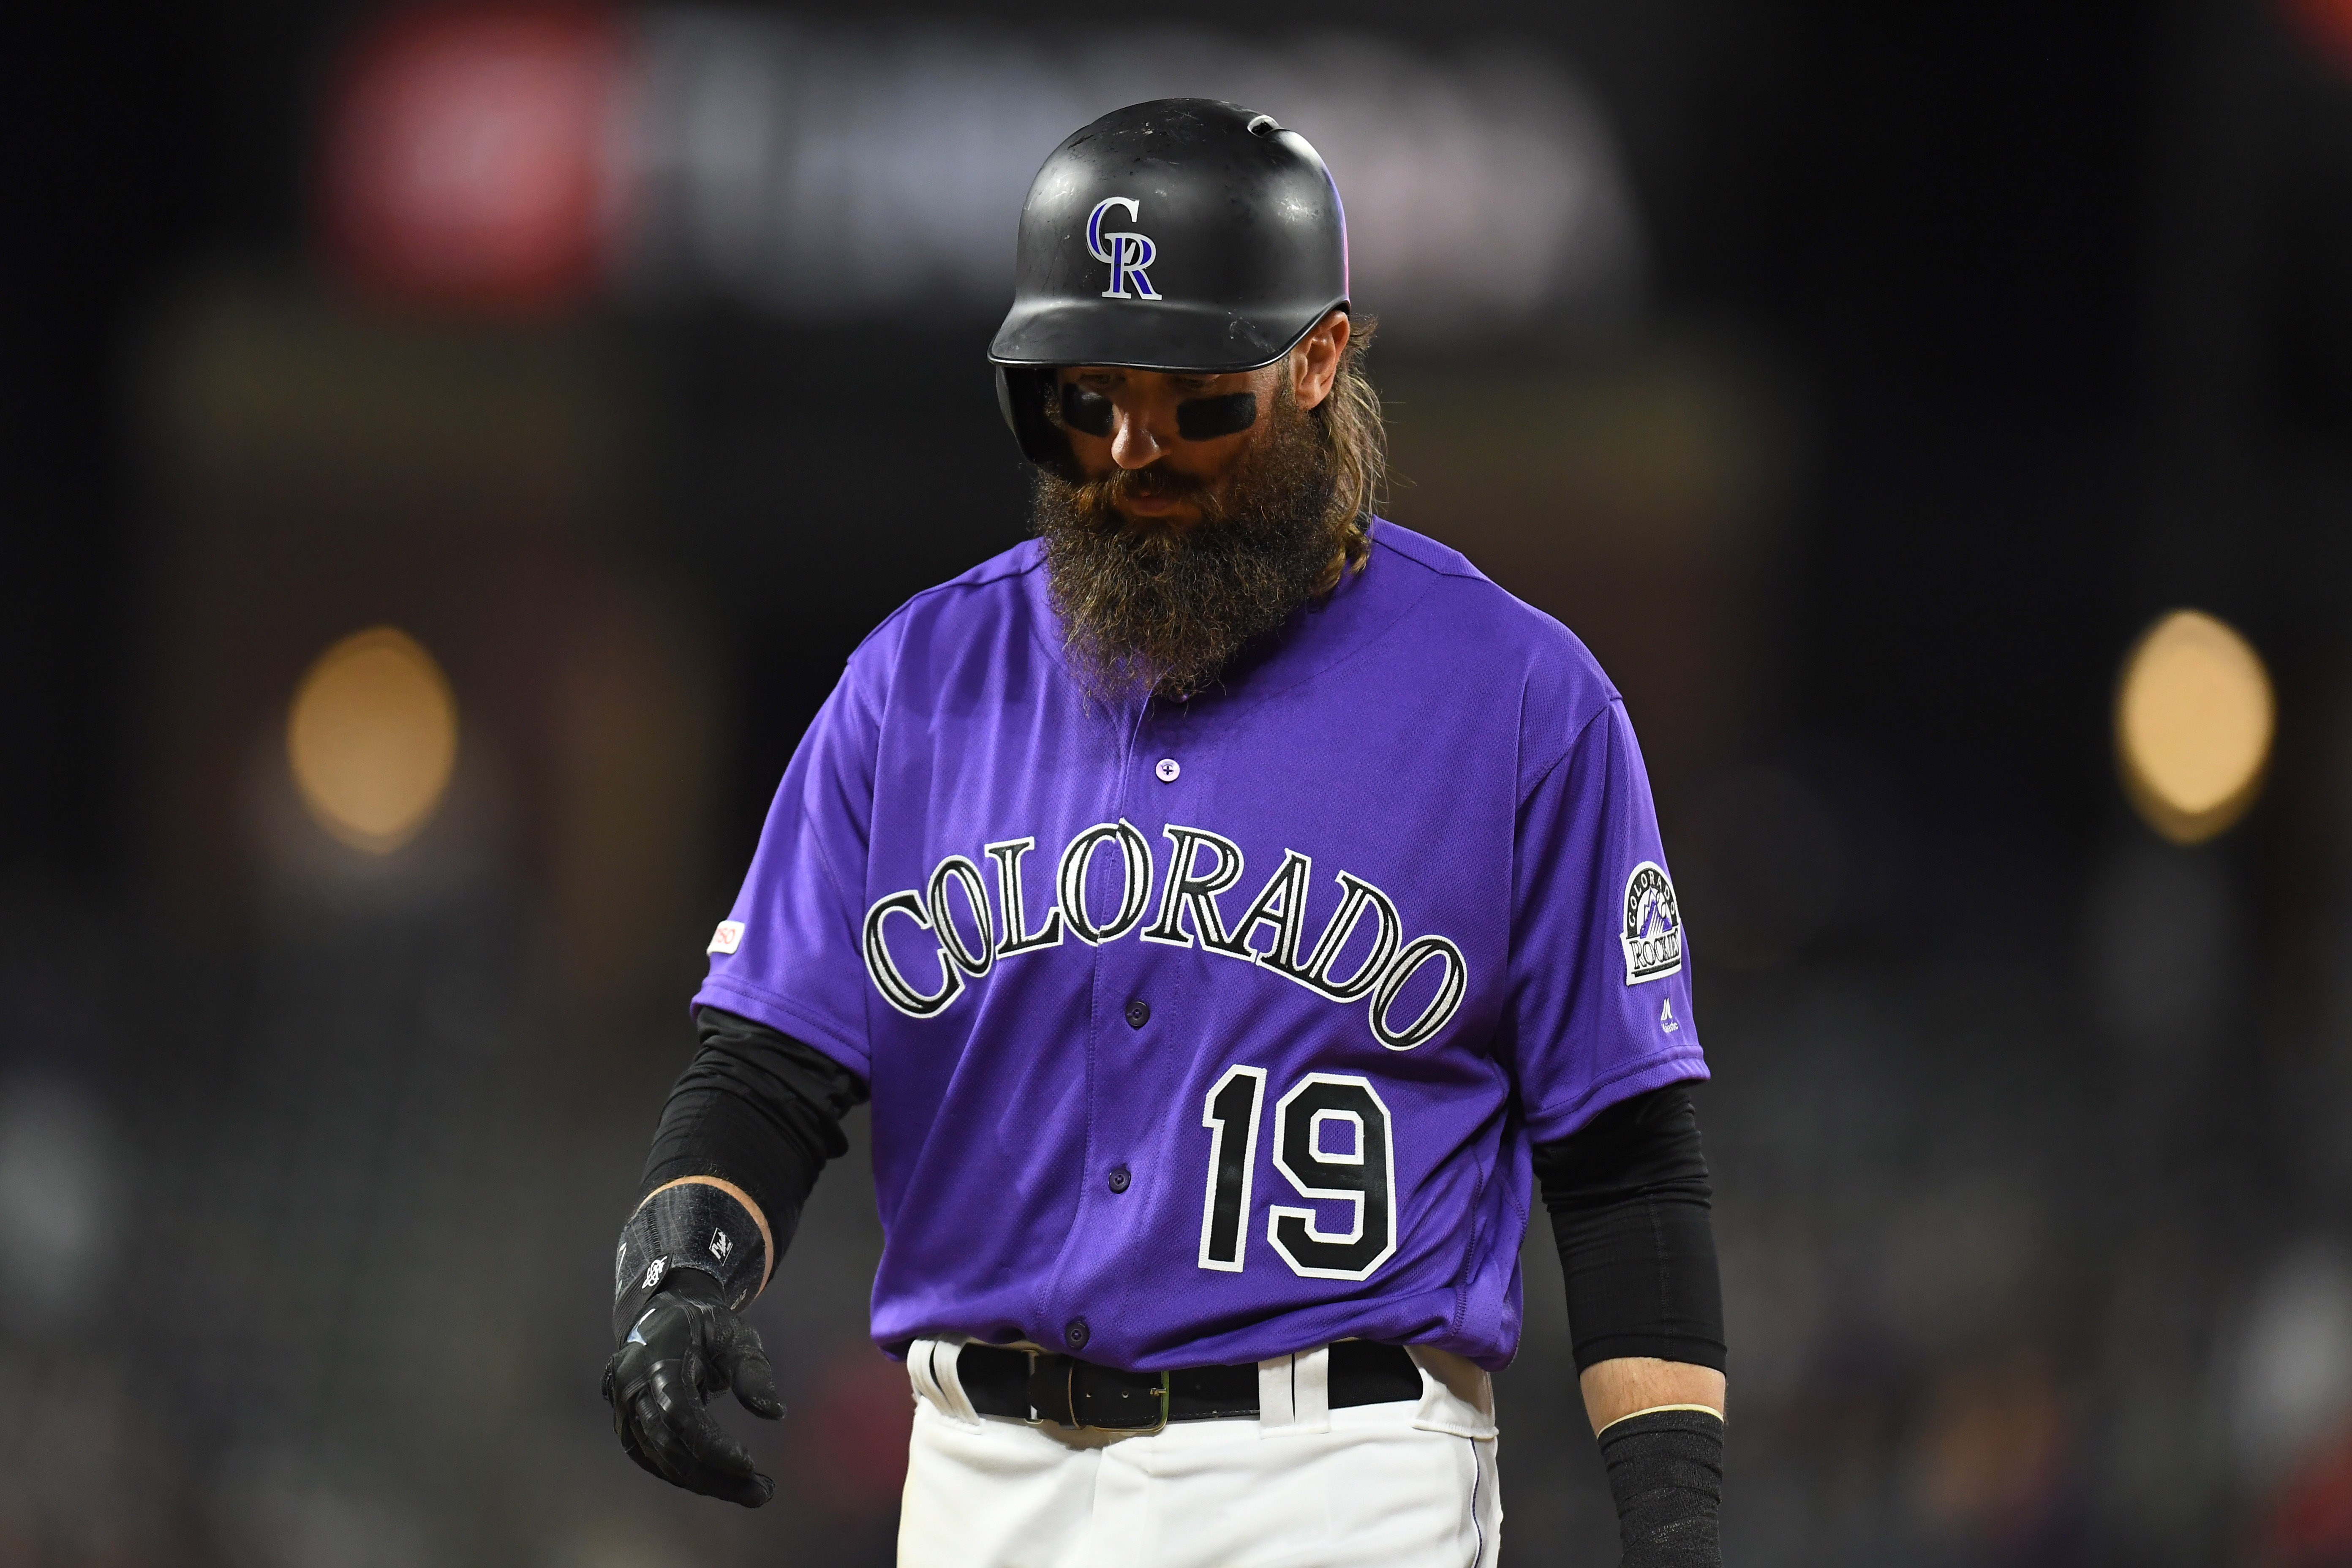 b98c7b71 Things aren't going well for the Colorado Rockies to start the 2019 season,  and their offense is particularly concerning